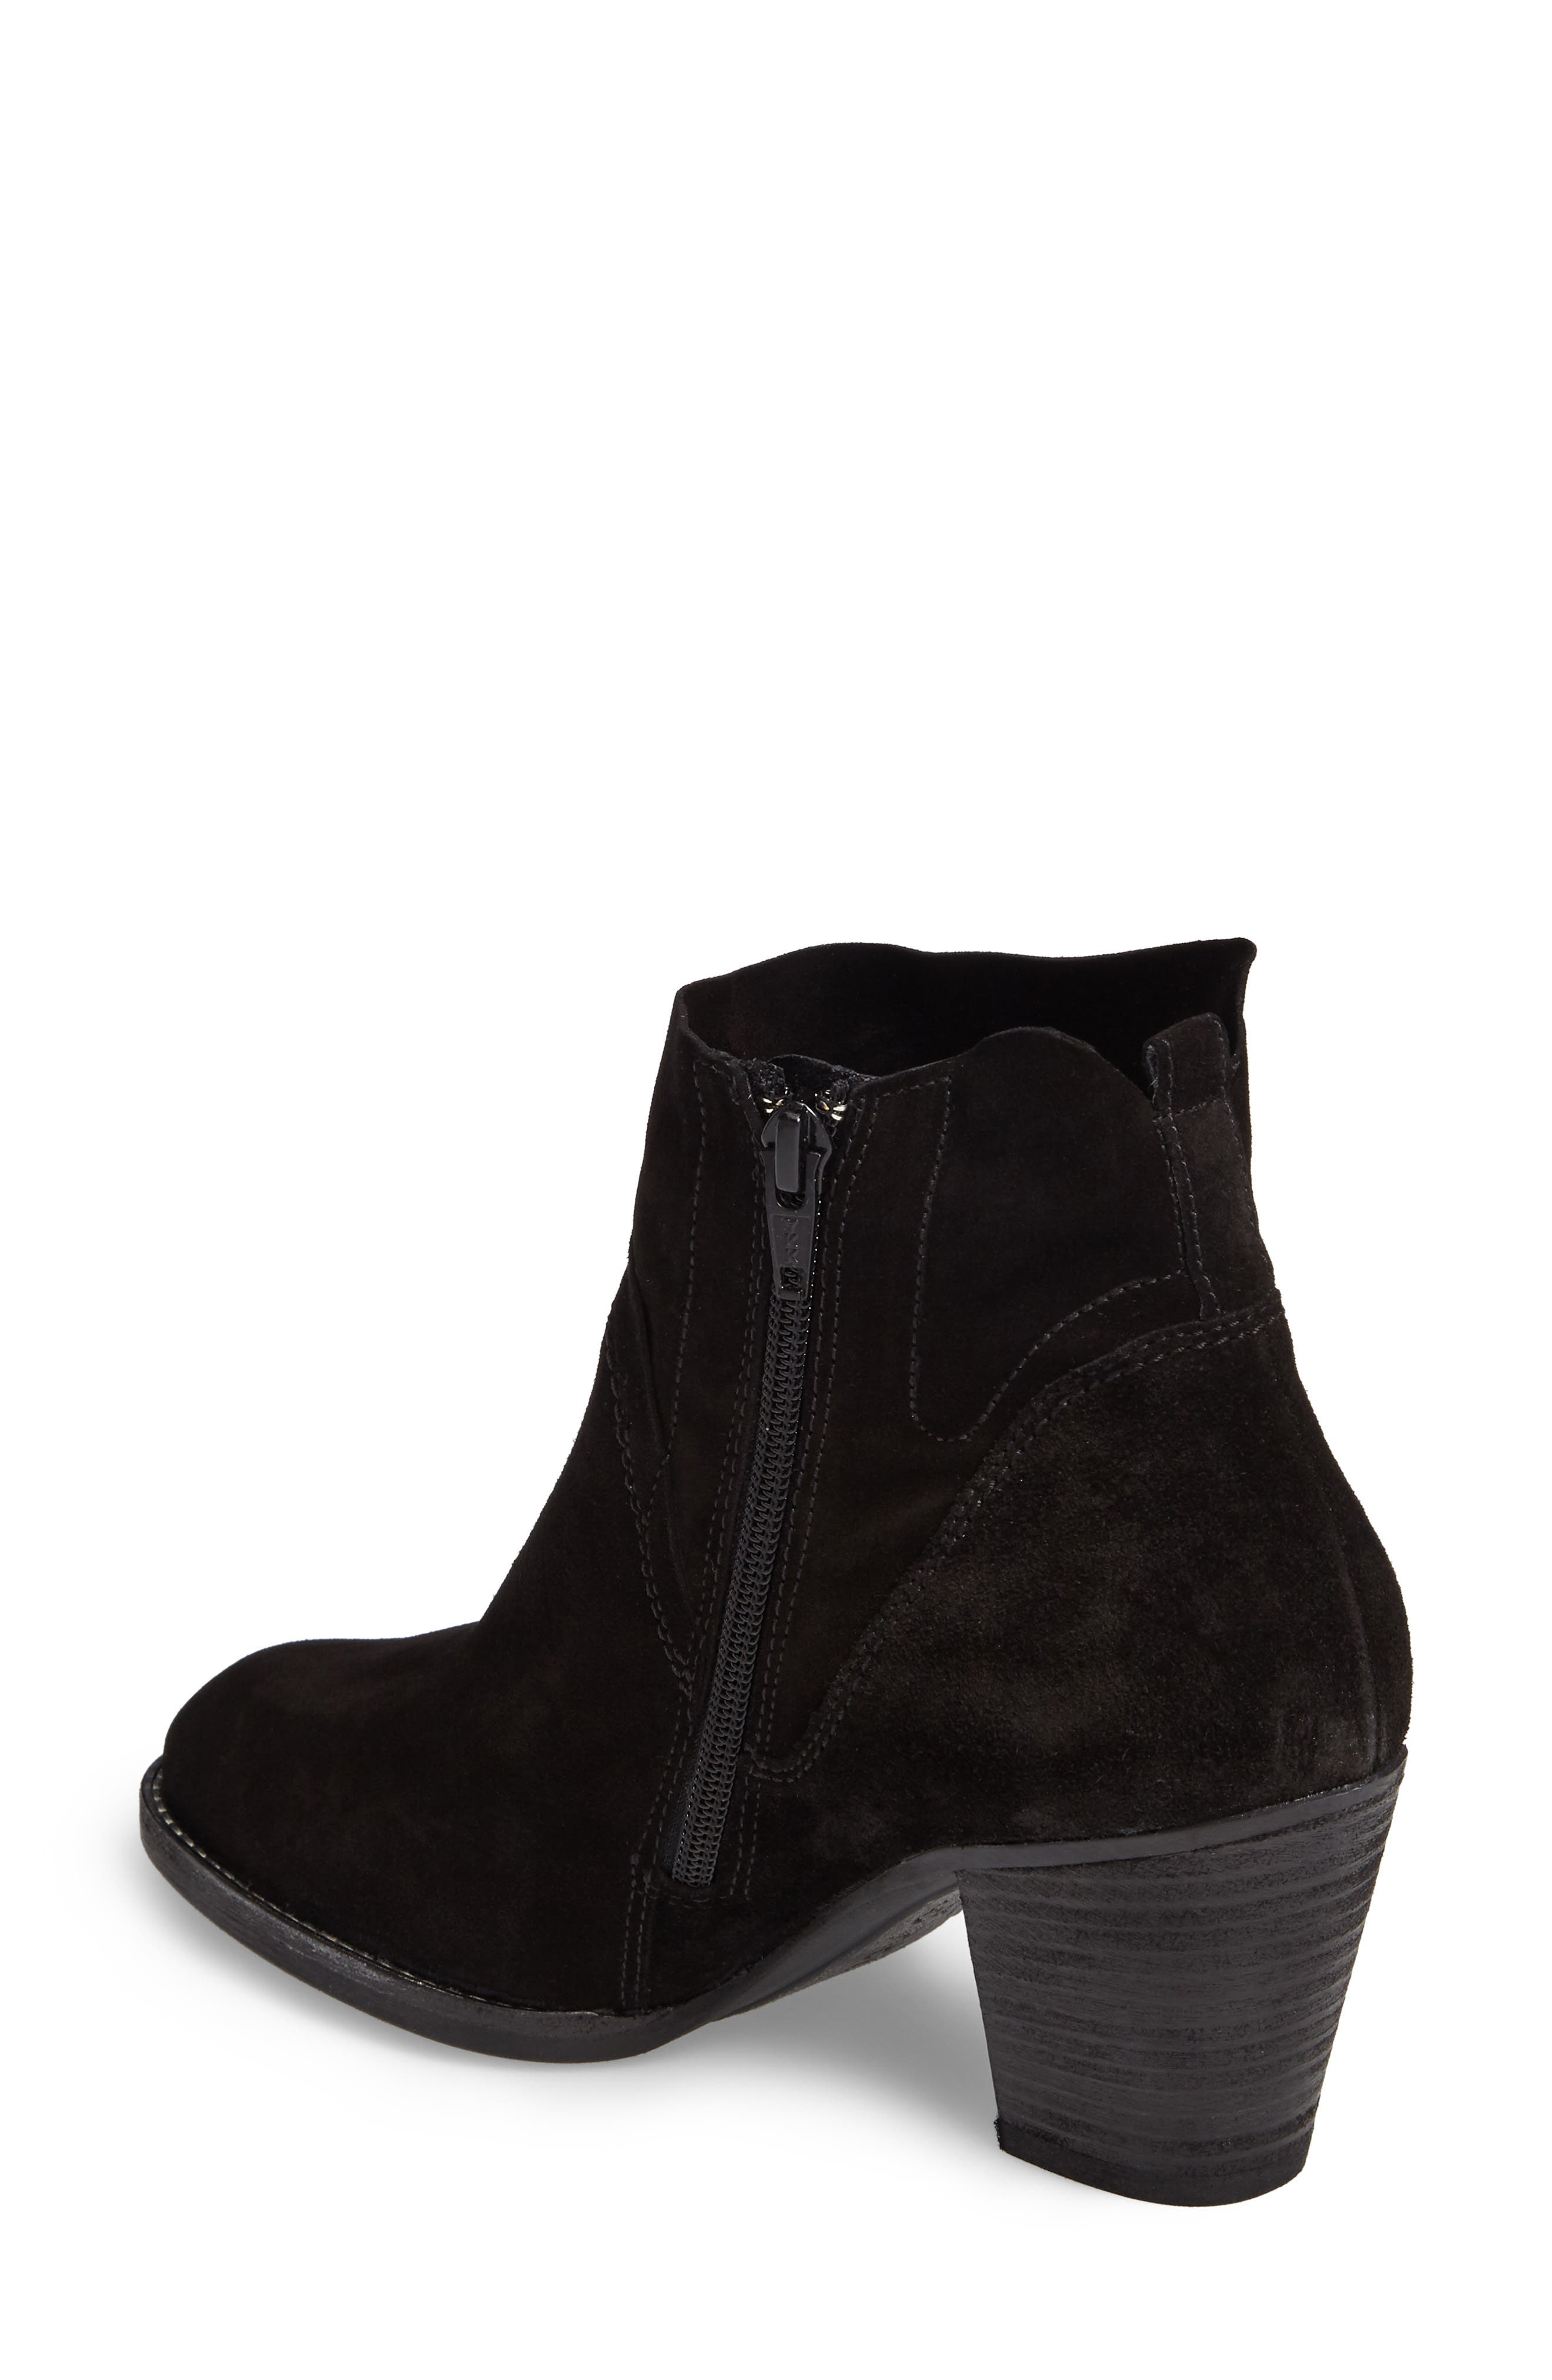 Nora Water Resistant Bootie,                             Alternate thumbnail 2, color,                             003